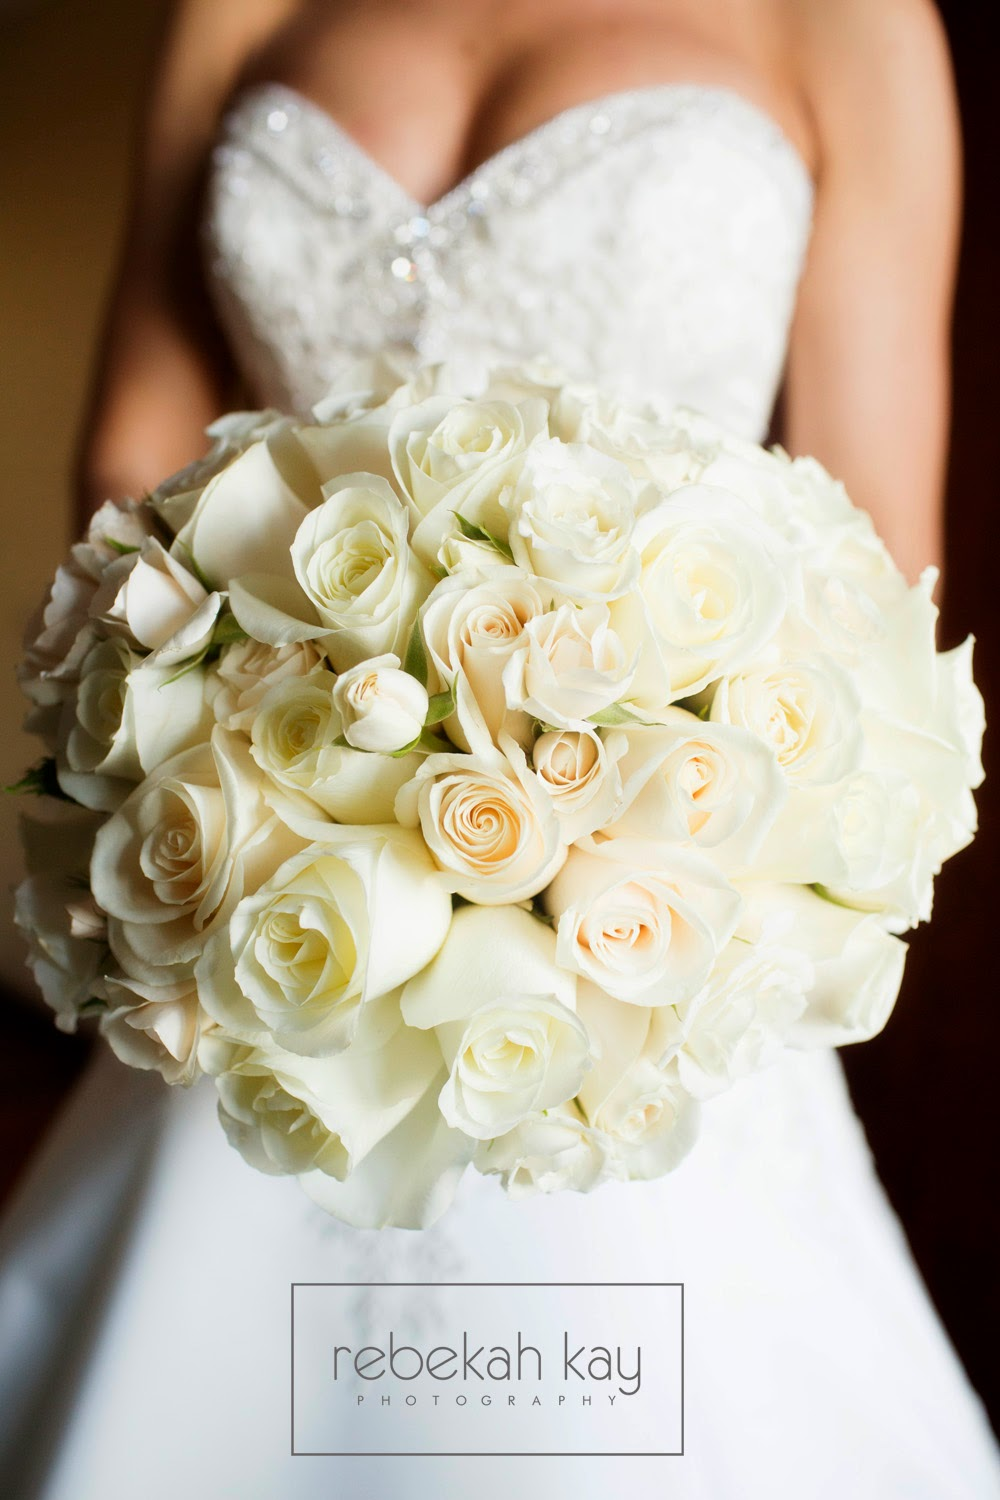 rebekah kay photography : les fleurs : fall wedding : white bridal bouquet : rose bouquet